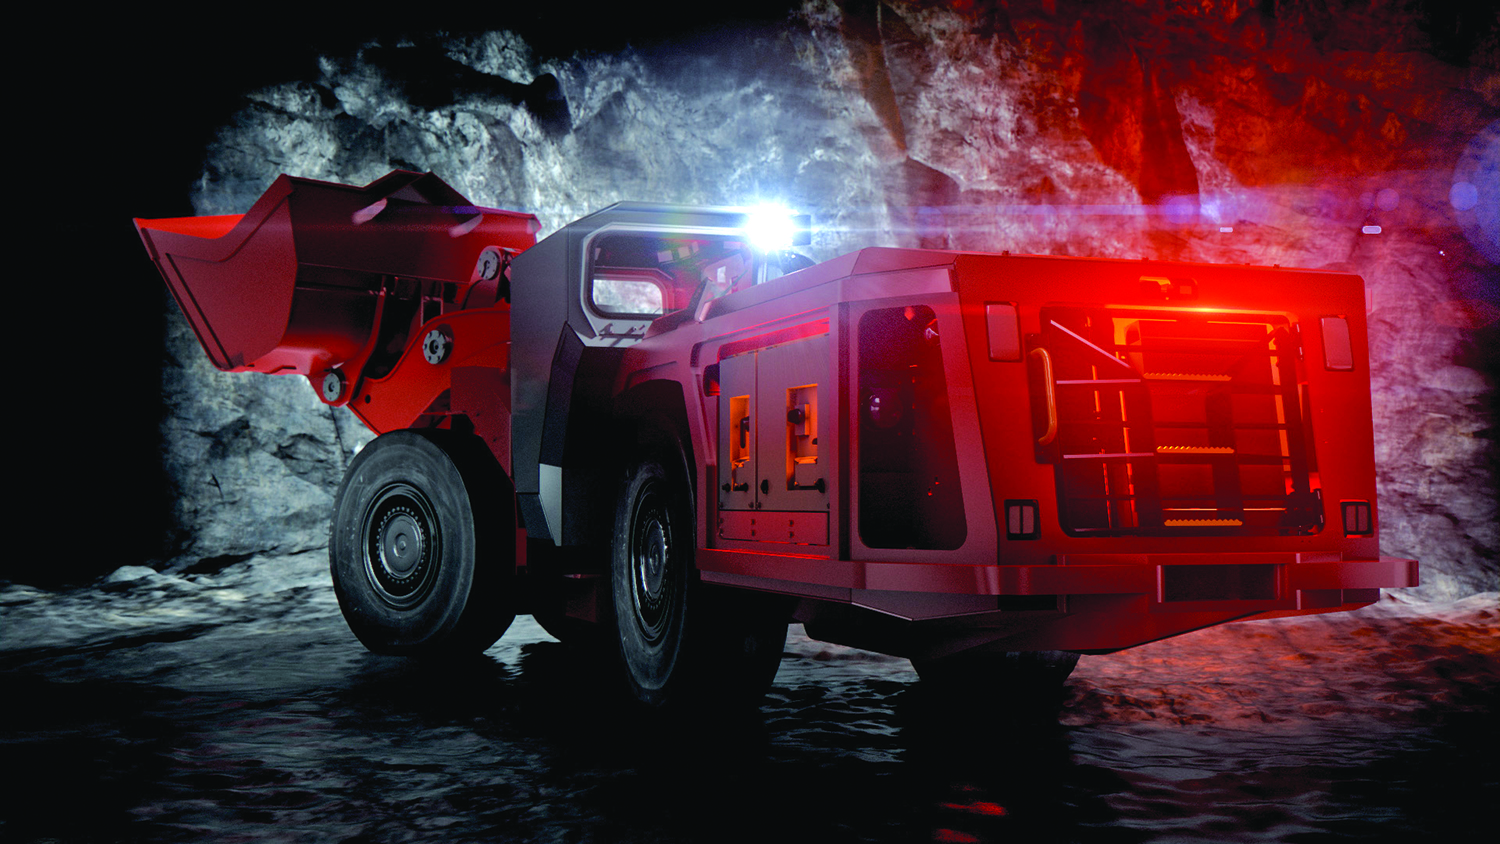 Using a 'quick charge' station, Sandvik LH307B can be ready for use in approximately 15 minutes.